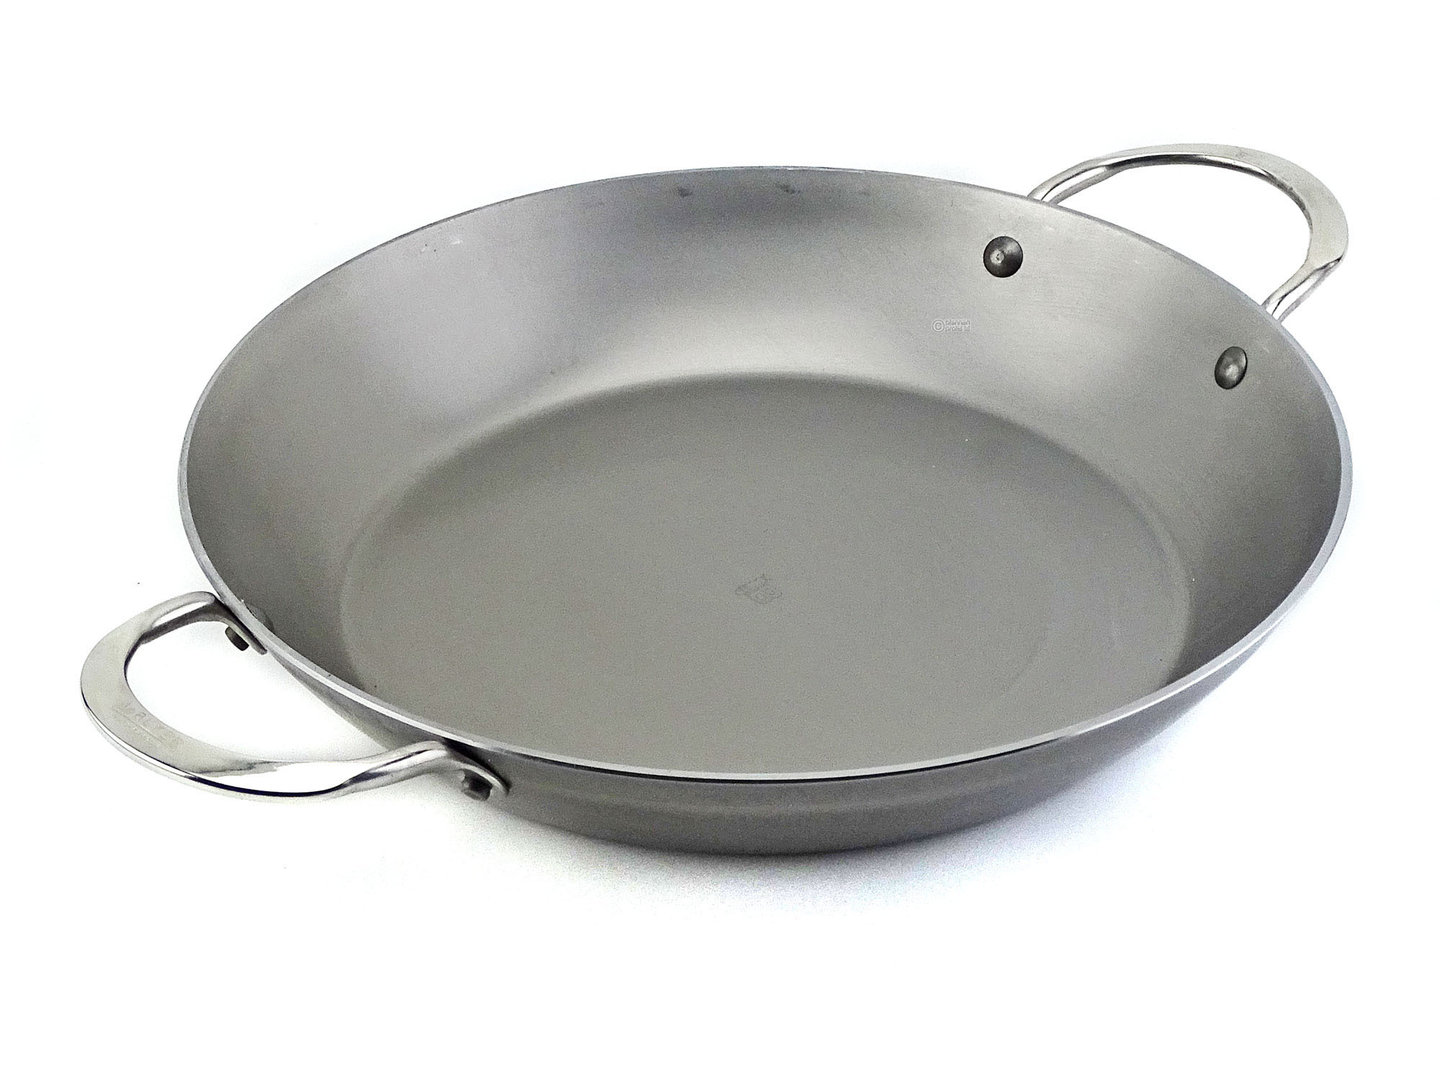 DE BUYER Paella Eisenpfanne MINERAL B ELEMENT 32 cm Servierpfanne